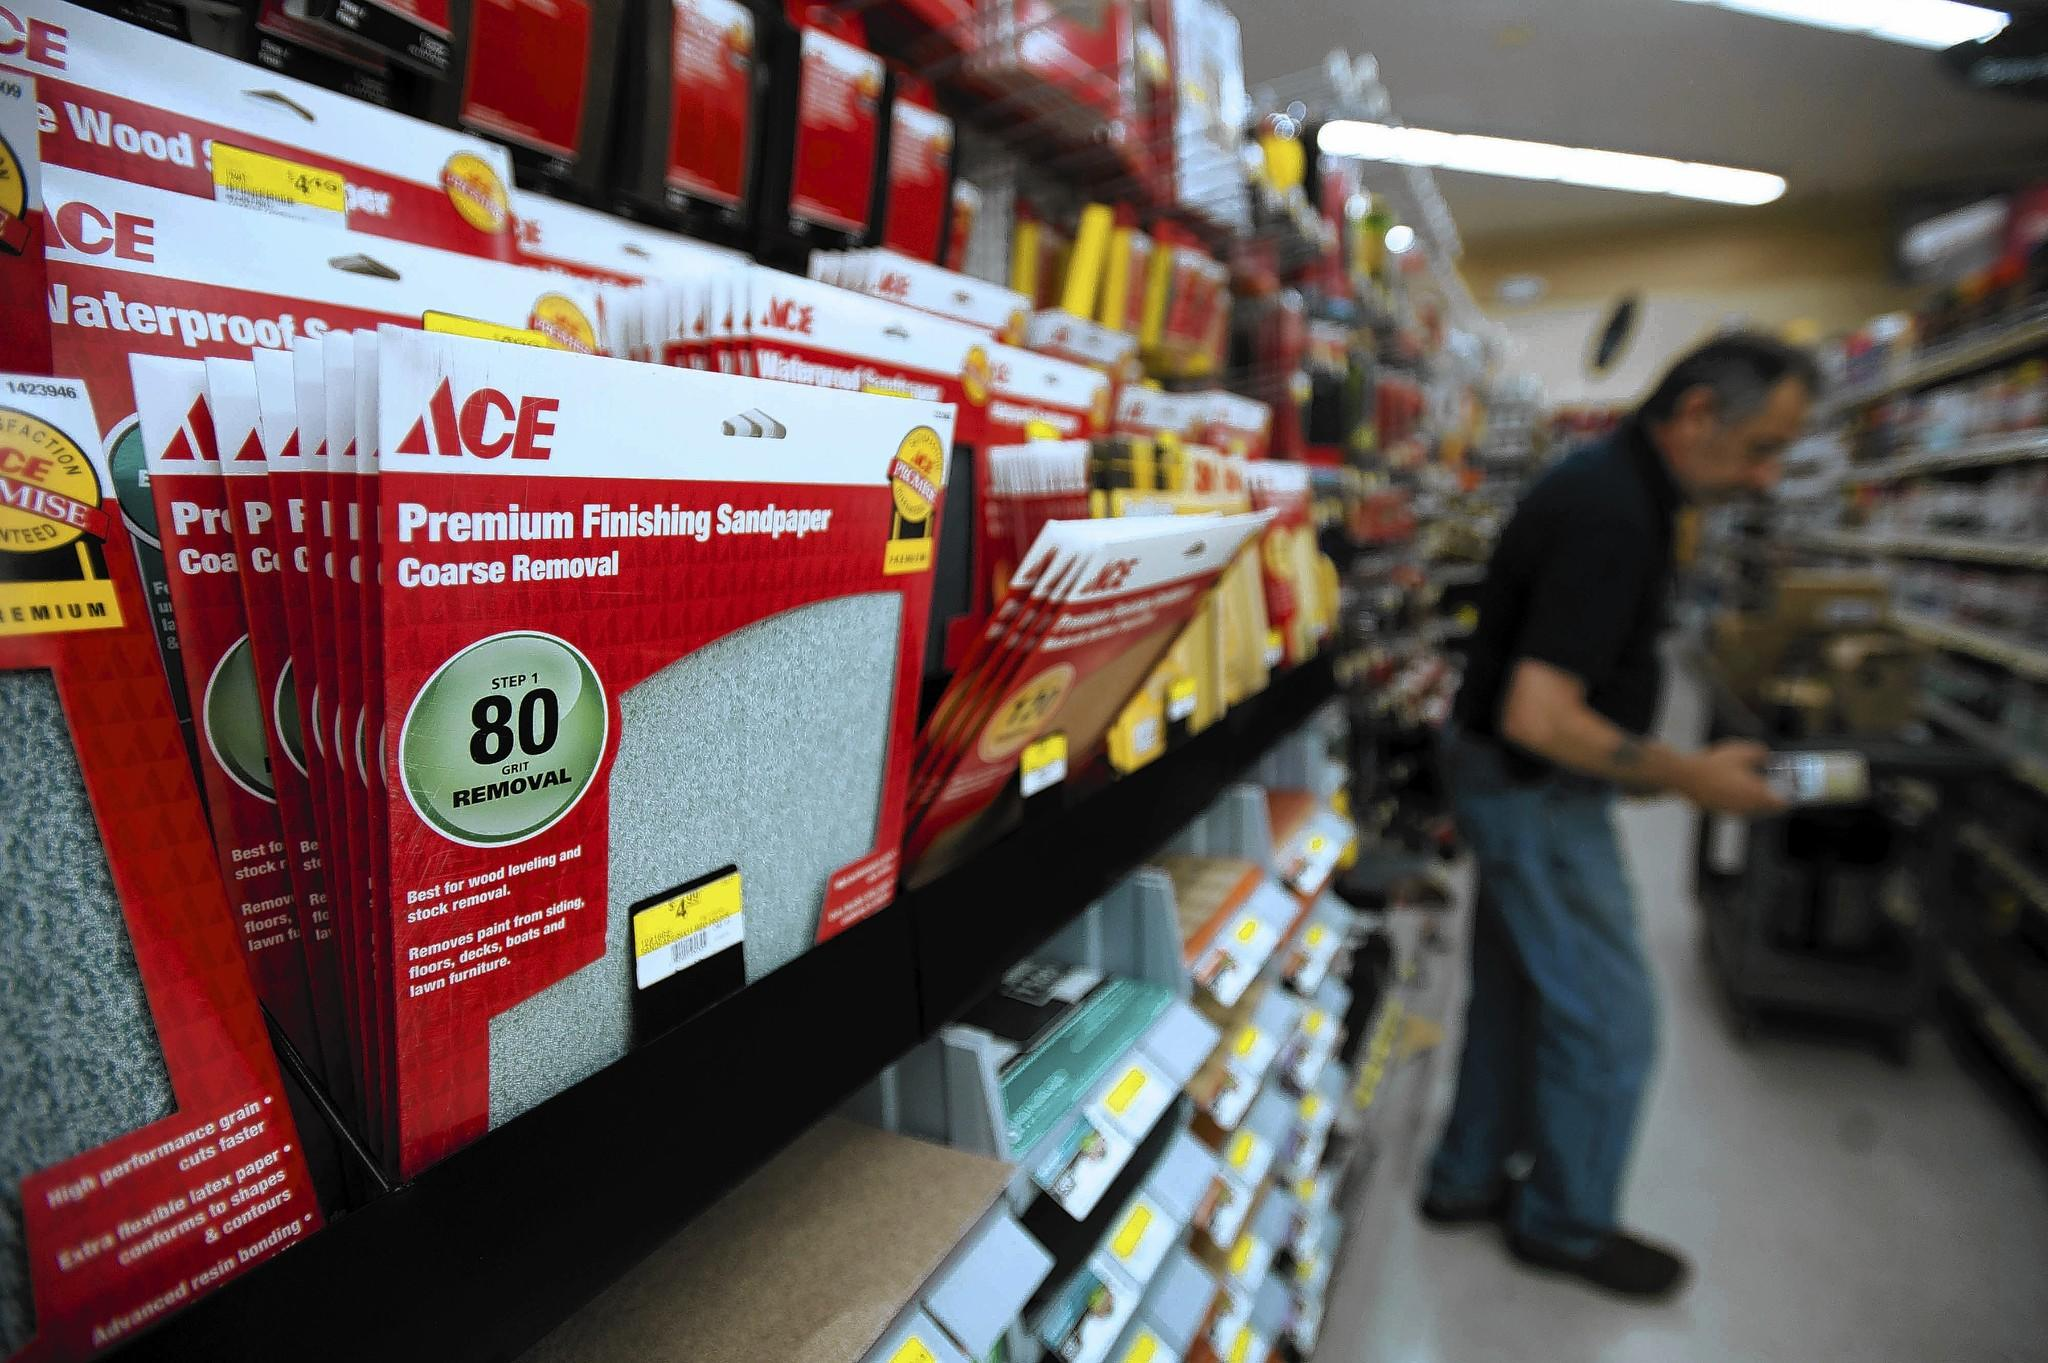 Ace Hardware received a 10-year state tax incentive worth $12.7 million about two years ago.